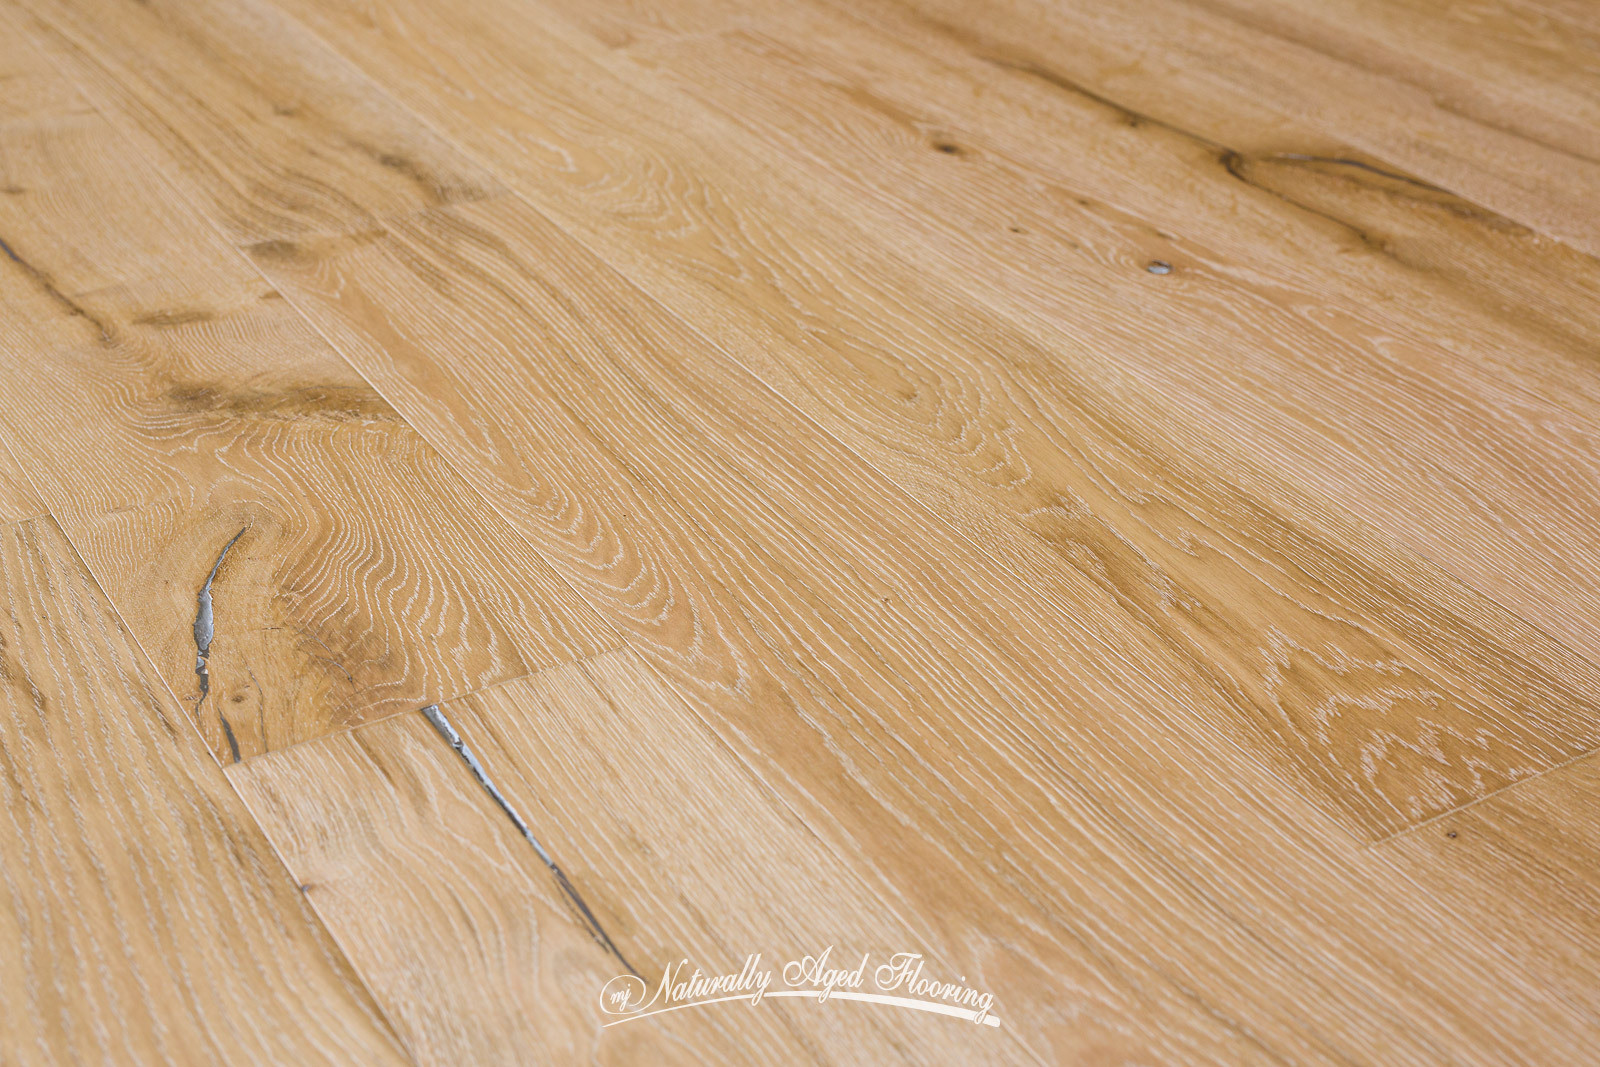 naf hardwood flooring canada of wirebrushed series naturally aged flooring pertaining to snow cap